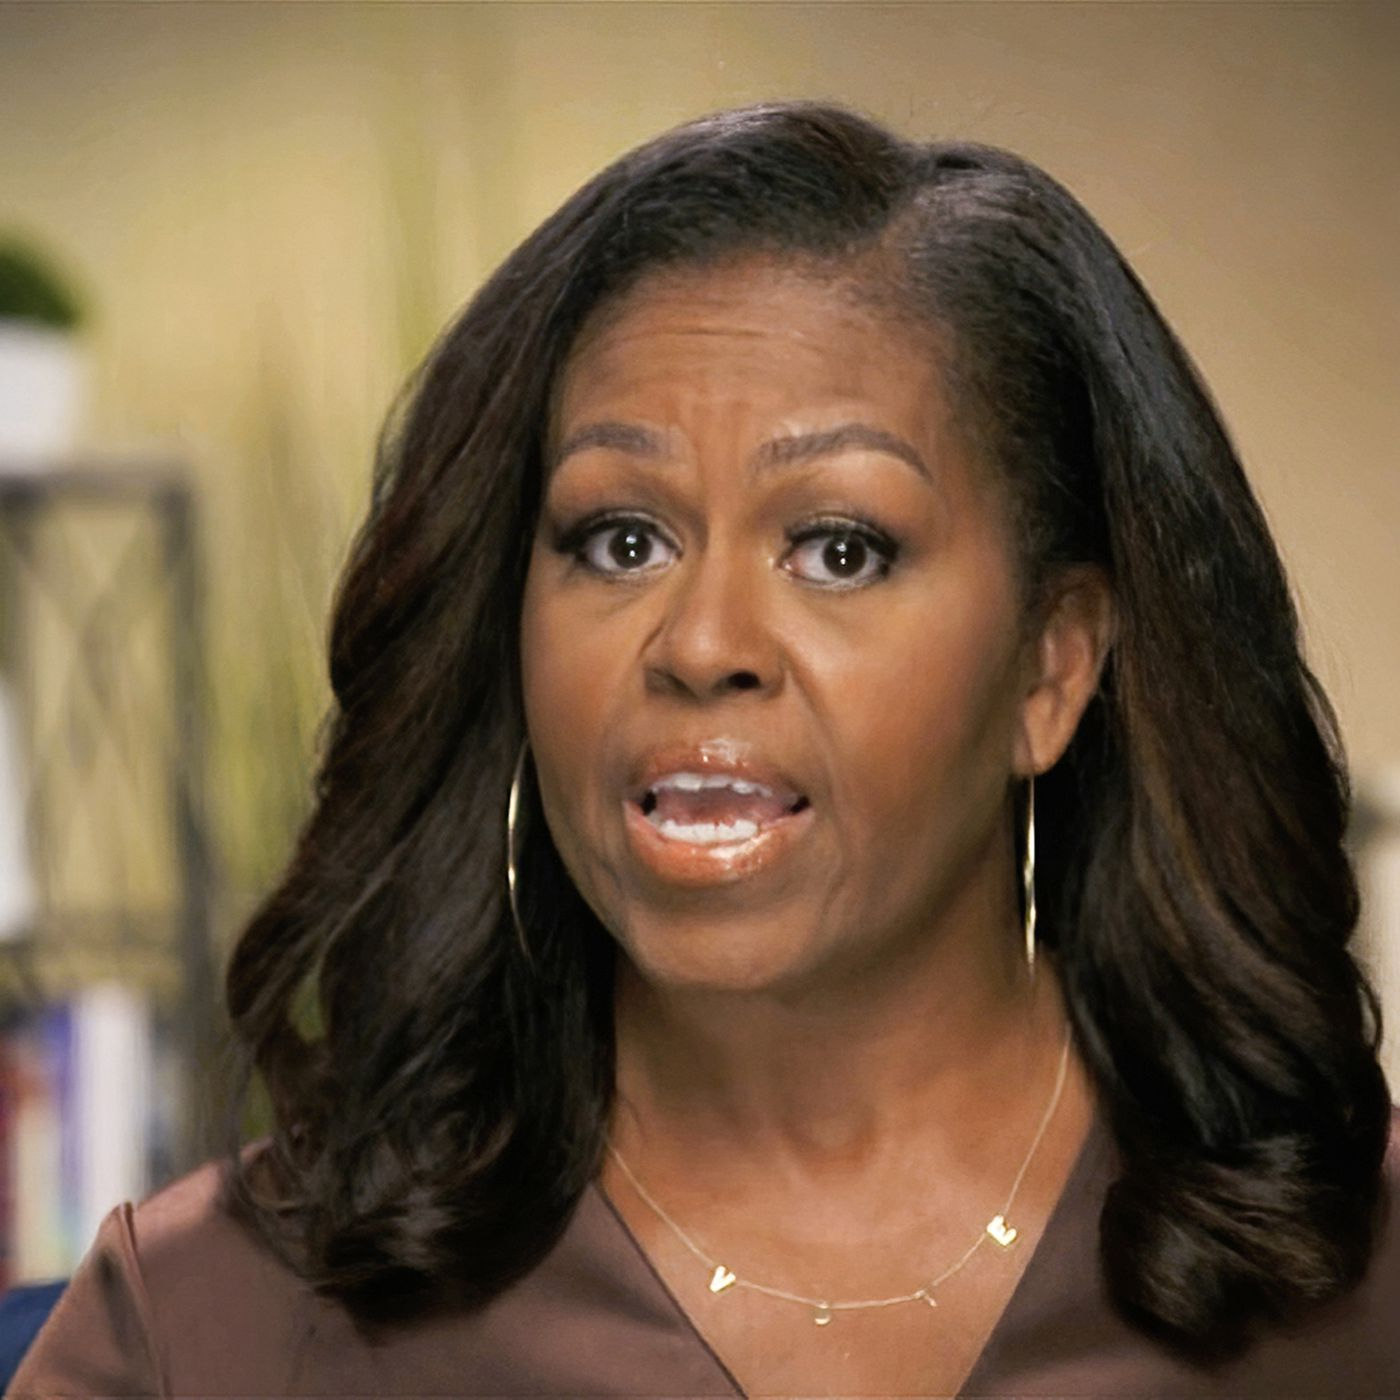 Michelle Obama S Vote Necklace Sent A Viral Message To Dnc 2020 Viewers Vox